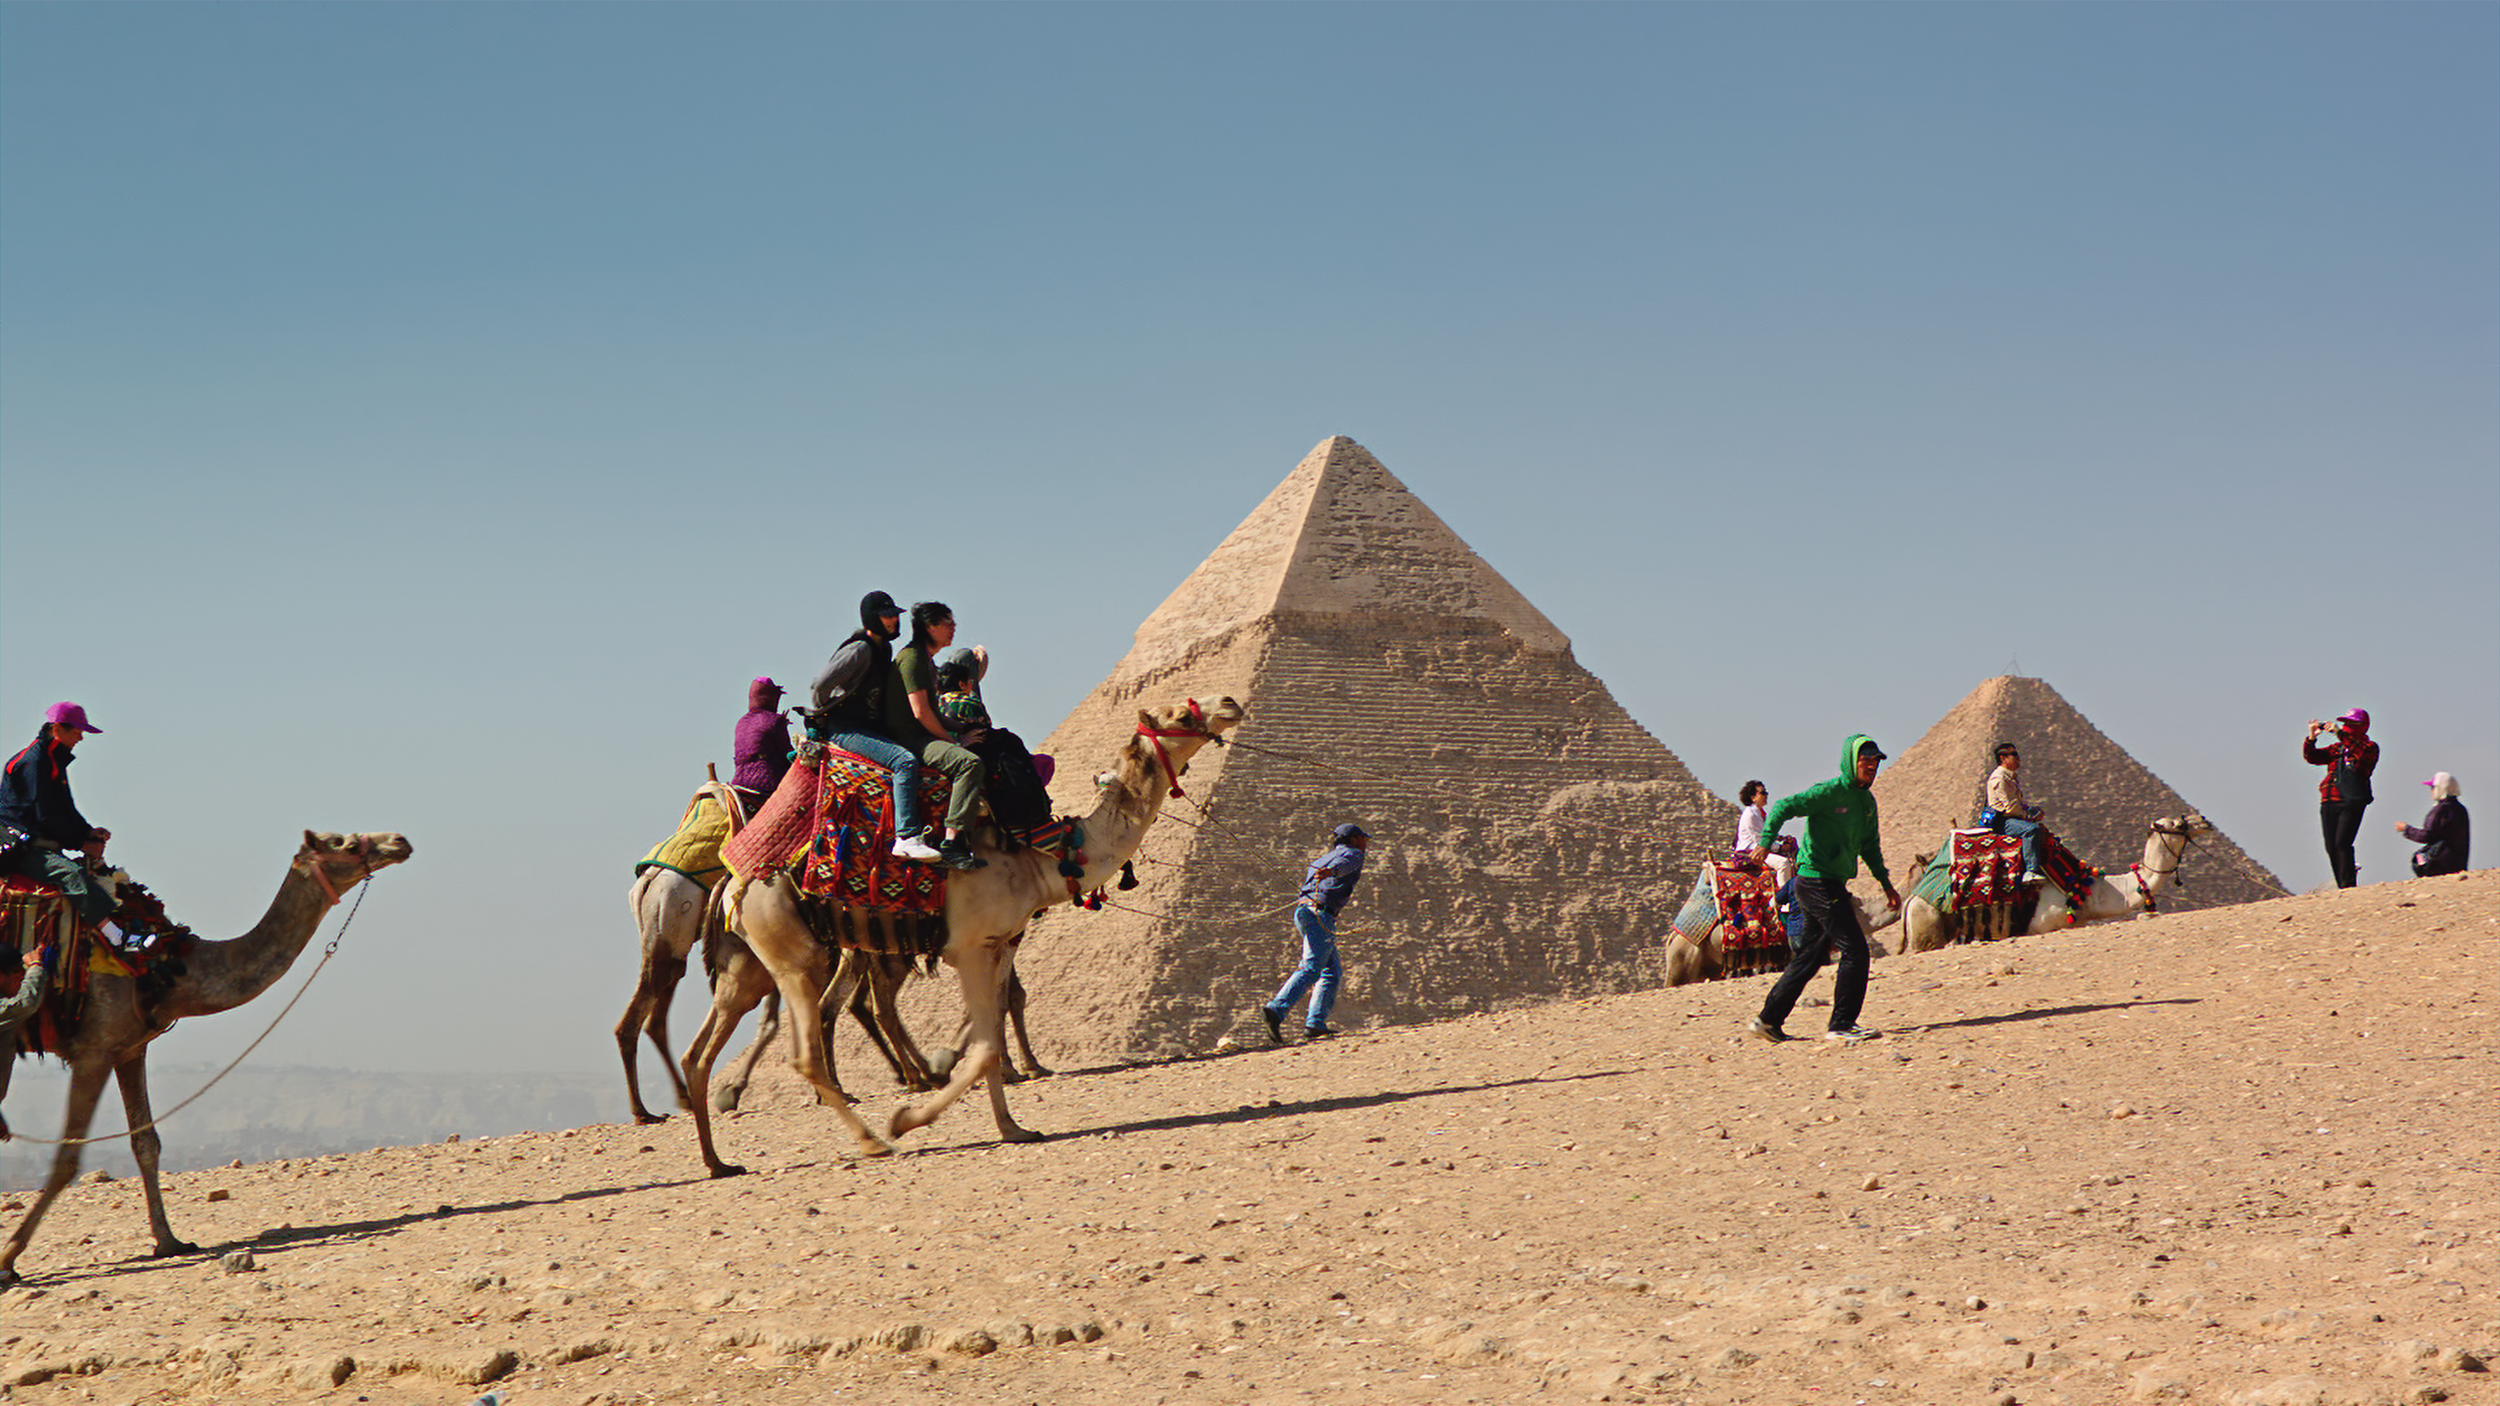 Tourists ride camels next to the Great Pyramid in Giza, Egypt.